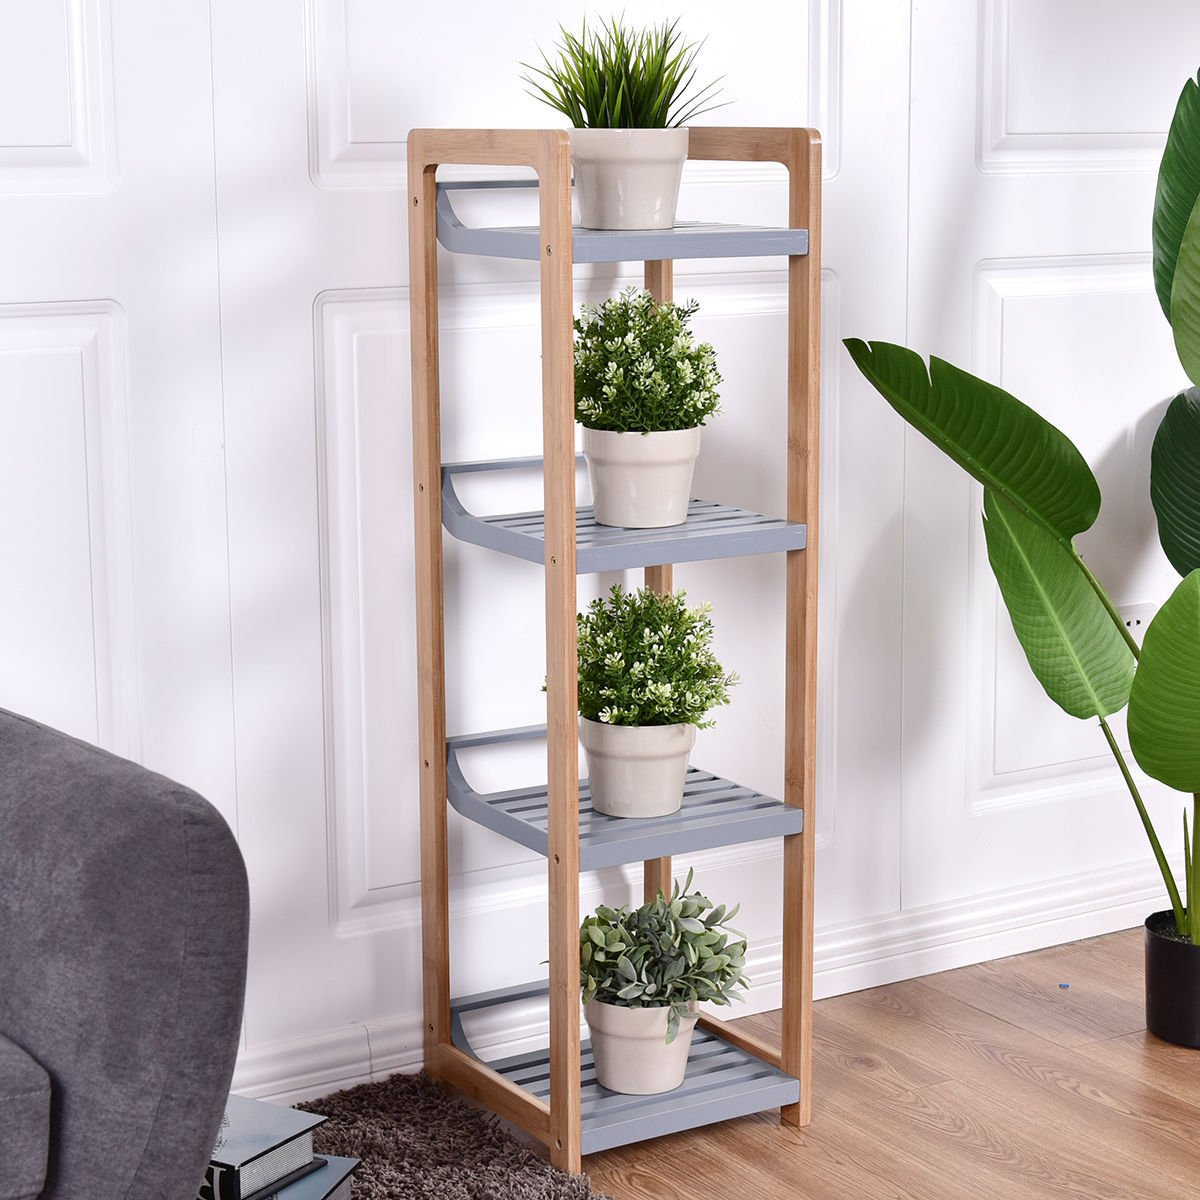 totoshop Multifunction Storage Tower Rack Shelving Shelf Units Stand Bamboo New 4 Tier by totoshop (Image #8)